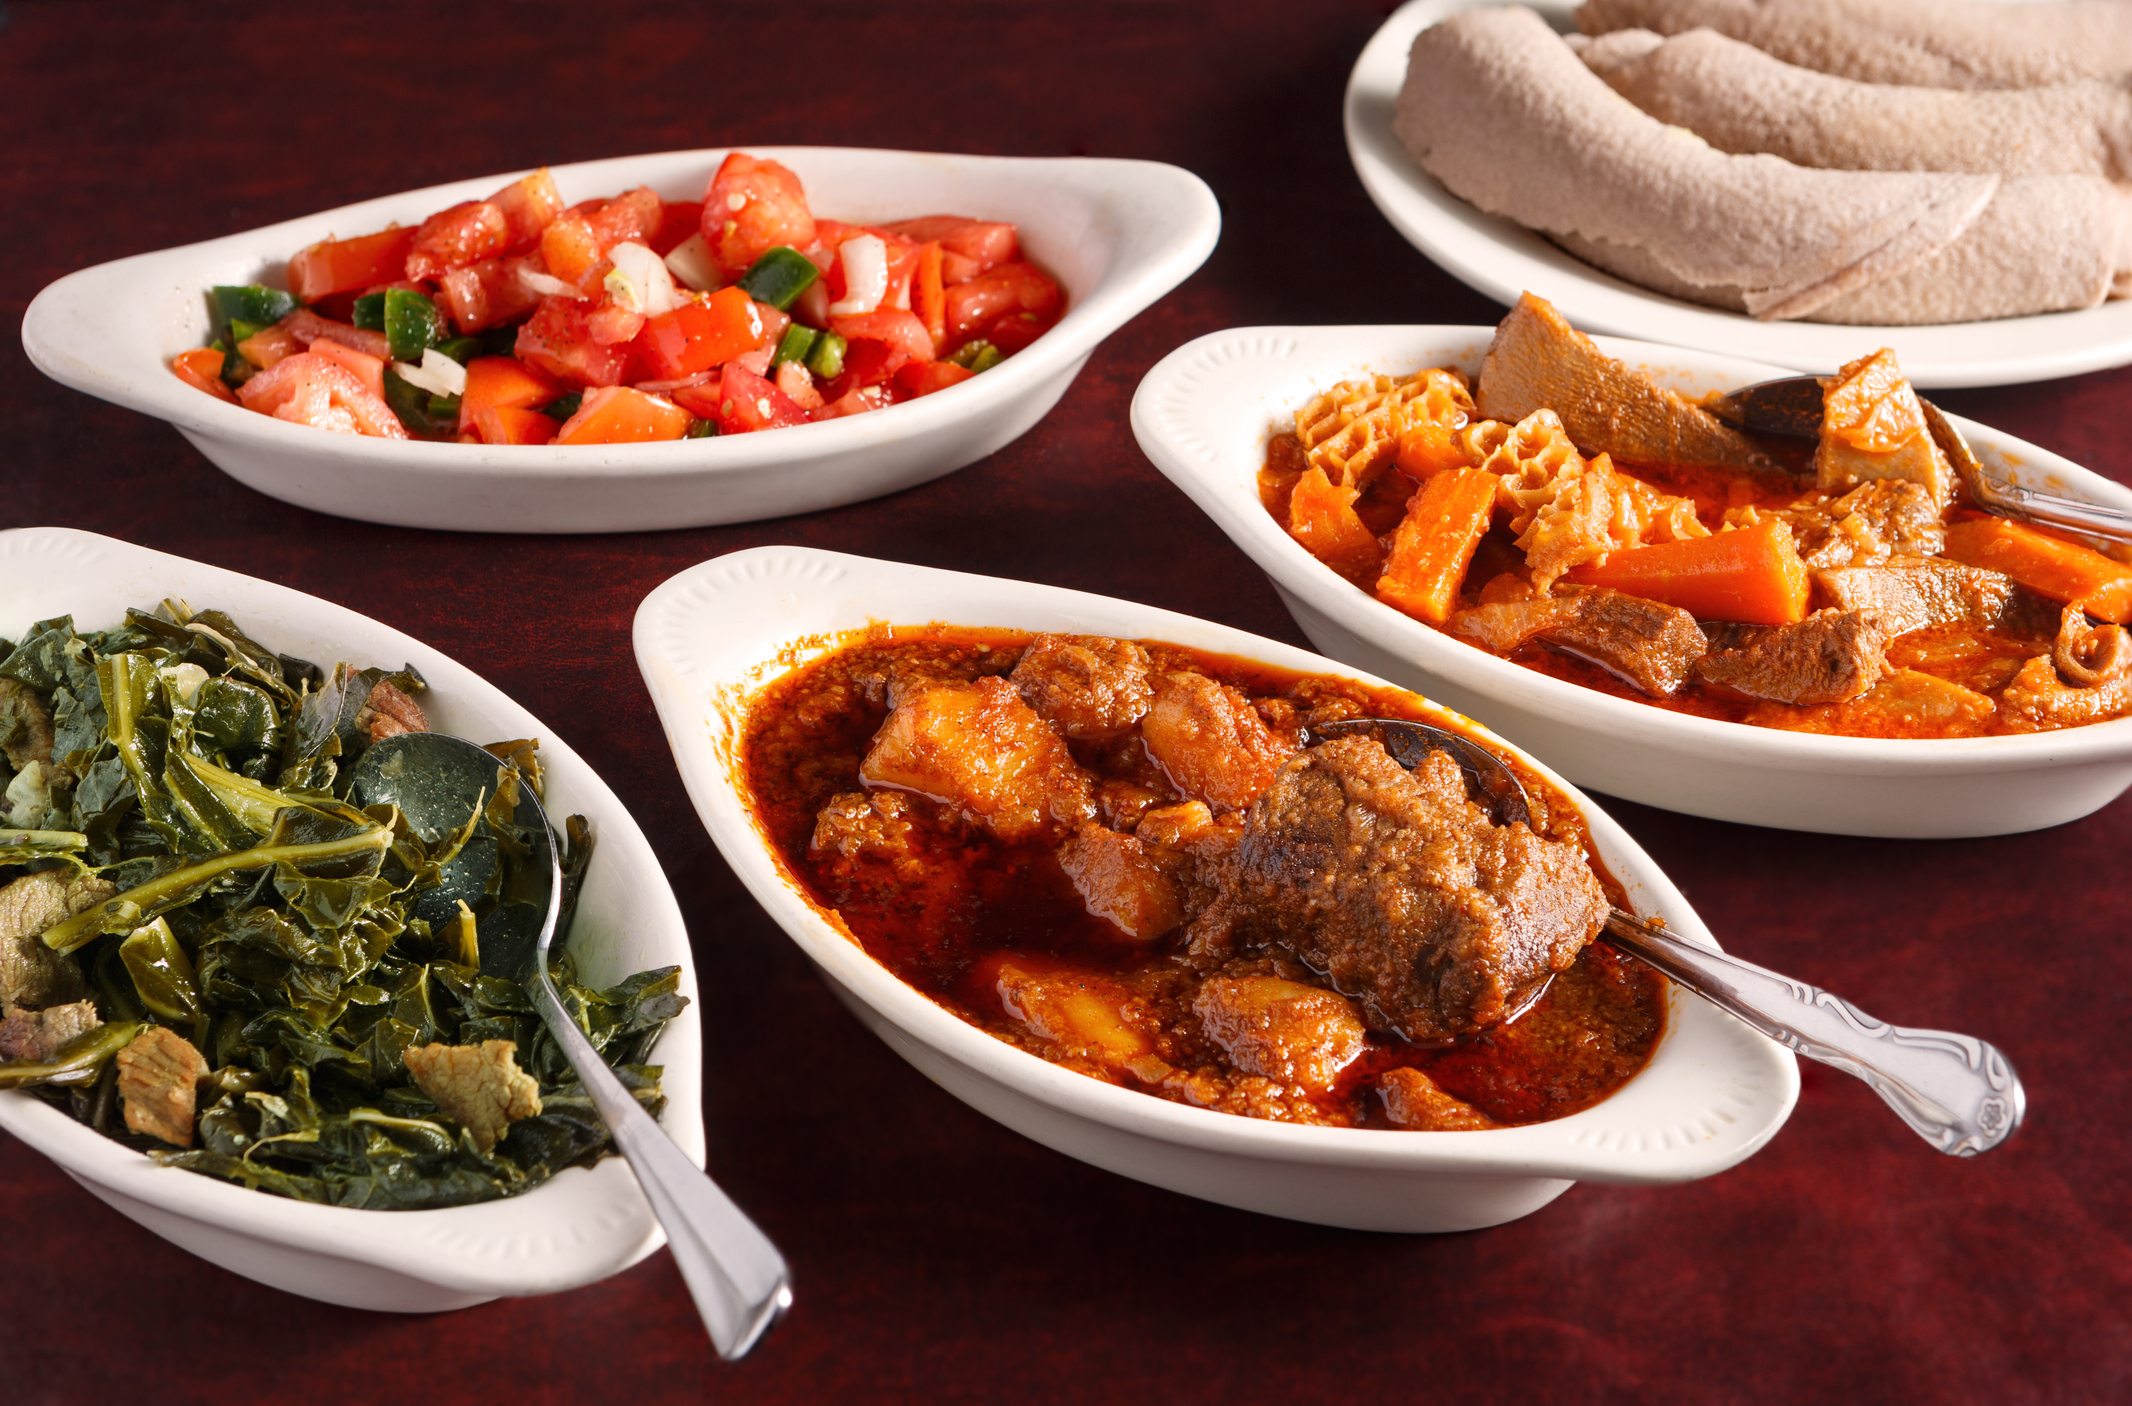 Variety of Ethiopian food dishes with injera